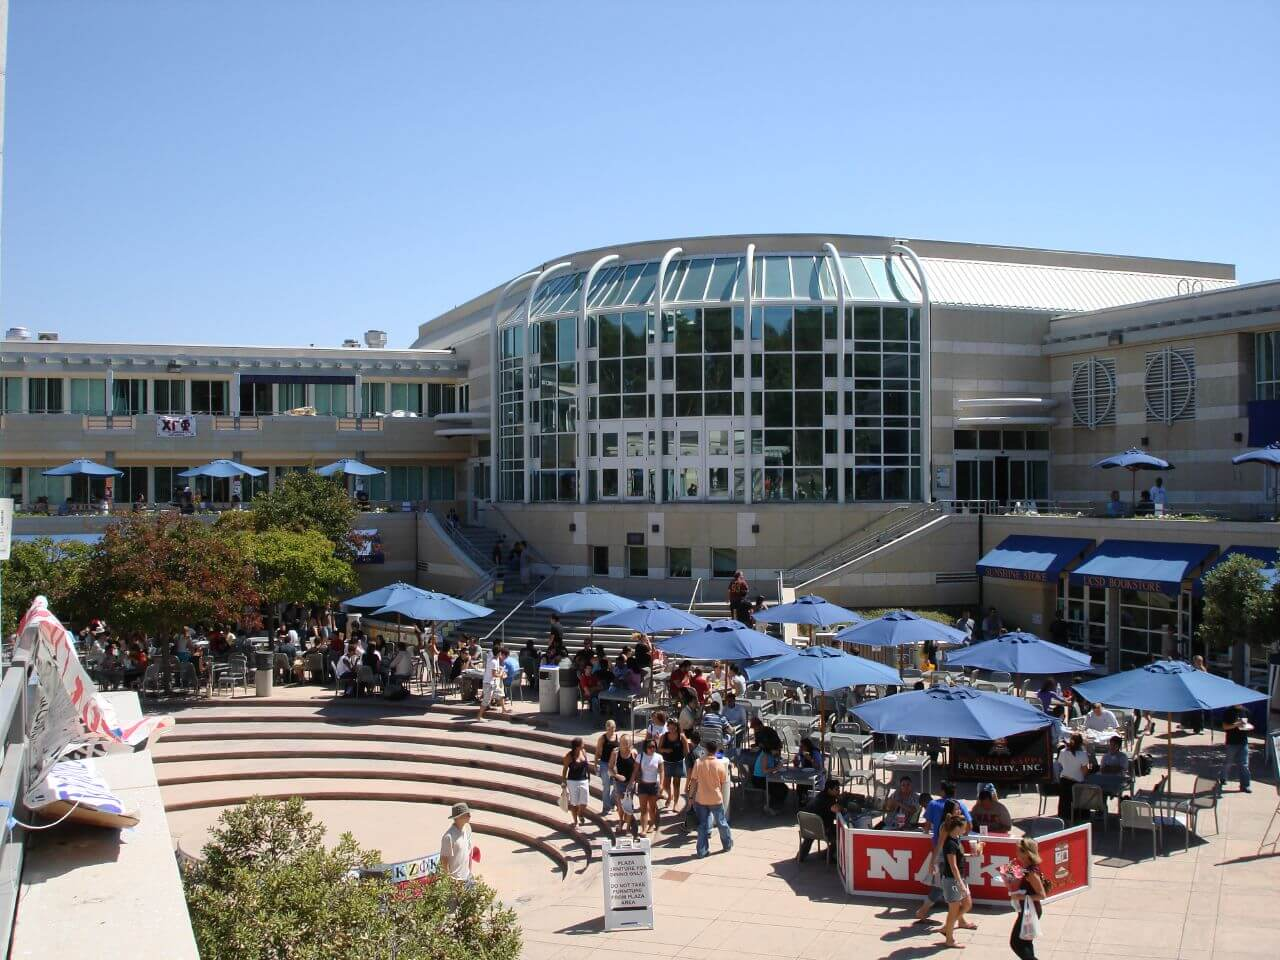 University of California San Diego Price Center